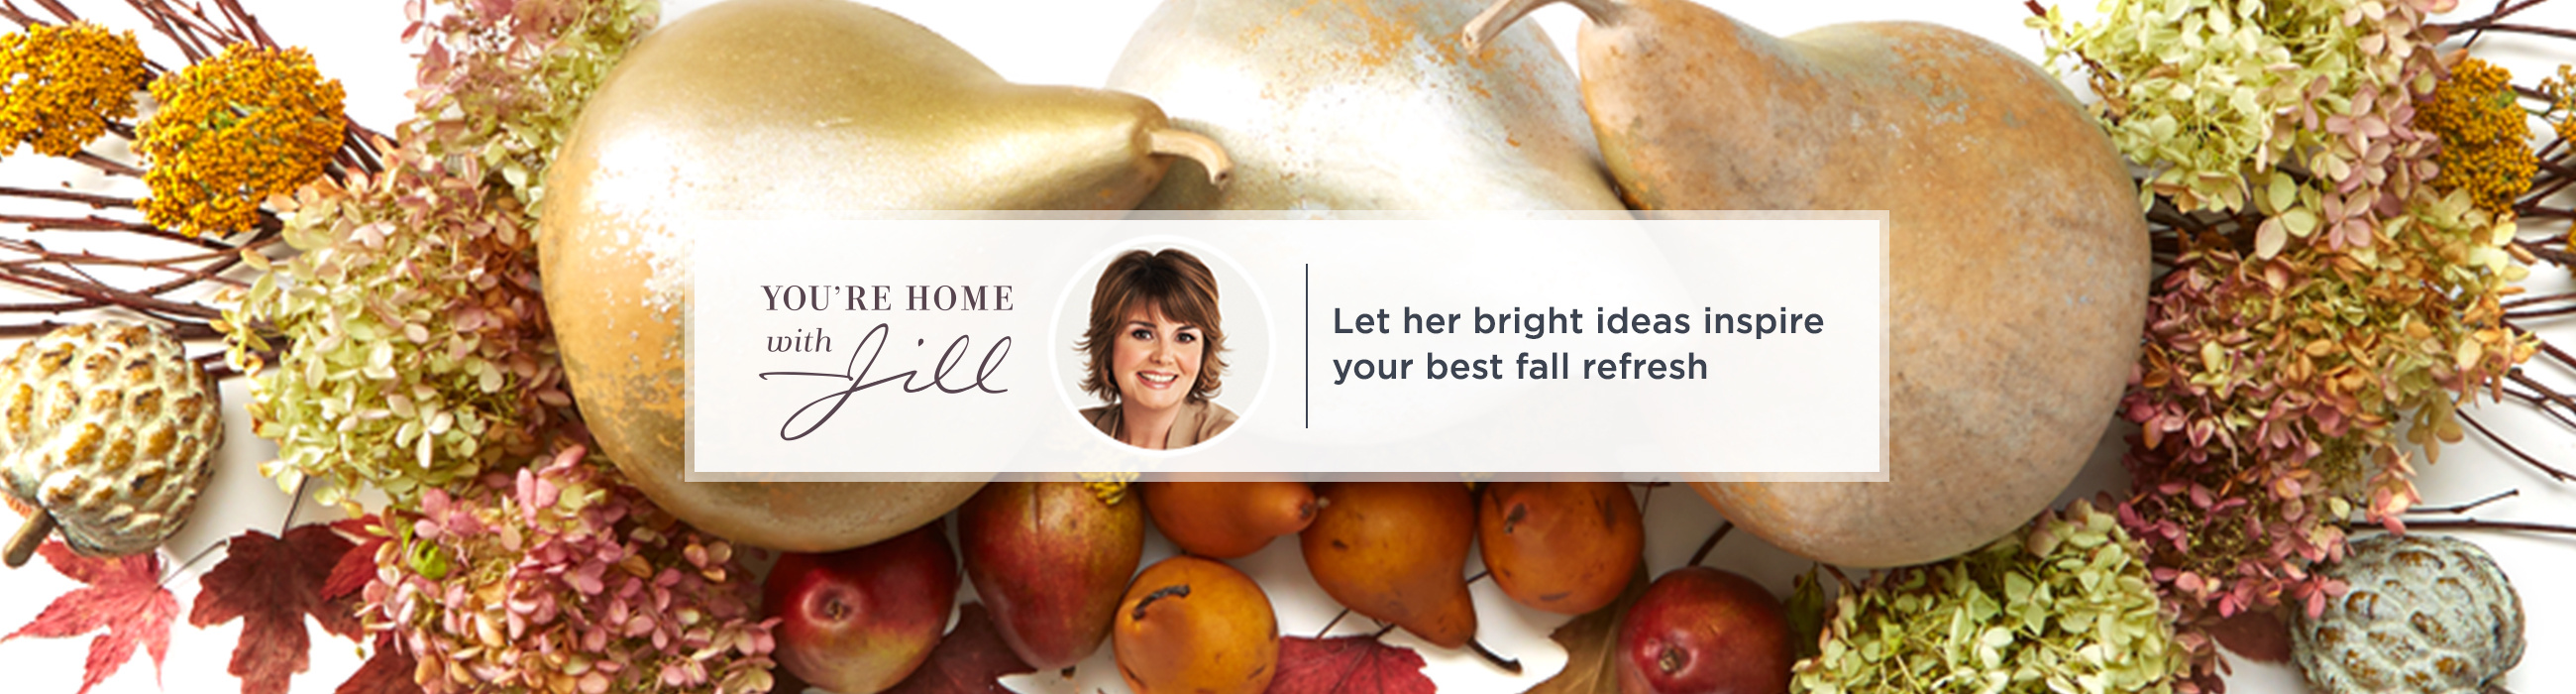 You're Home with Jill. Let her bright ideas inspire your best fall refresh